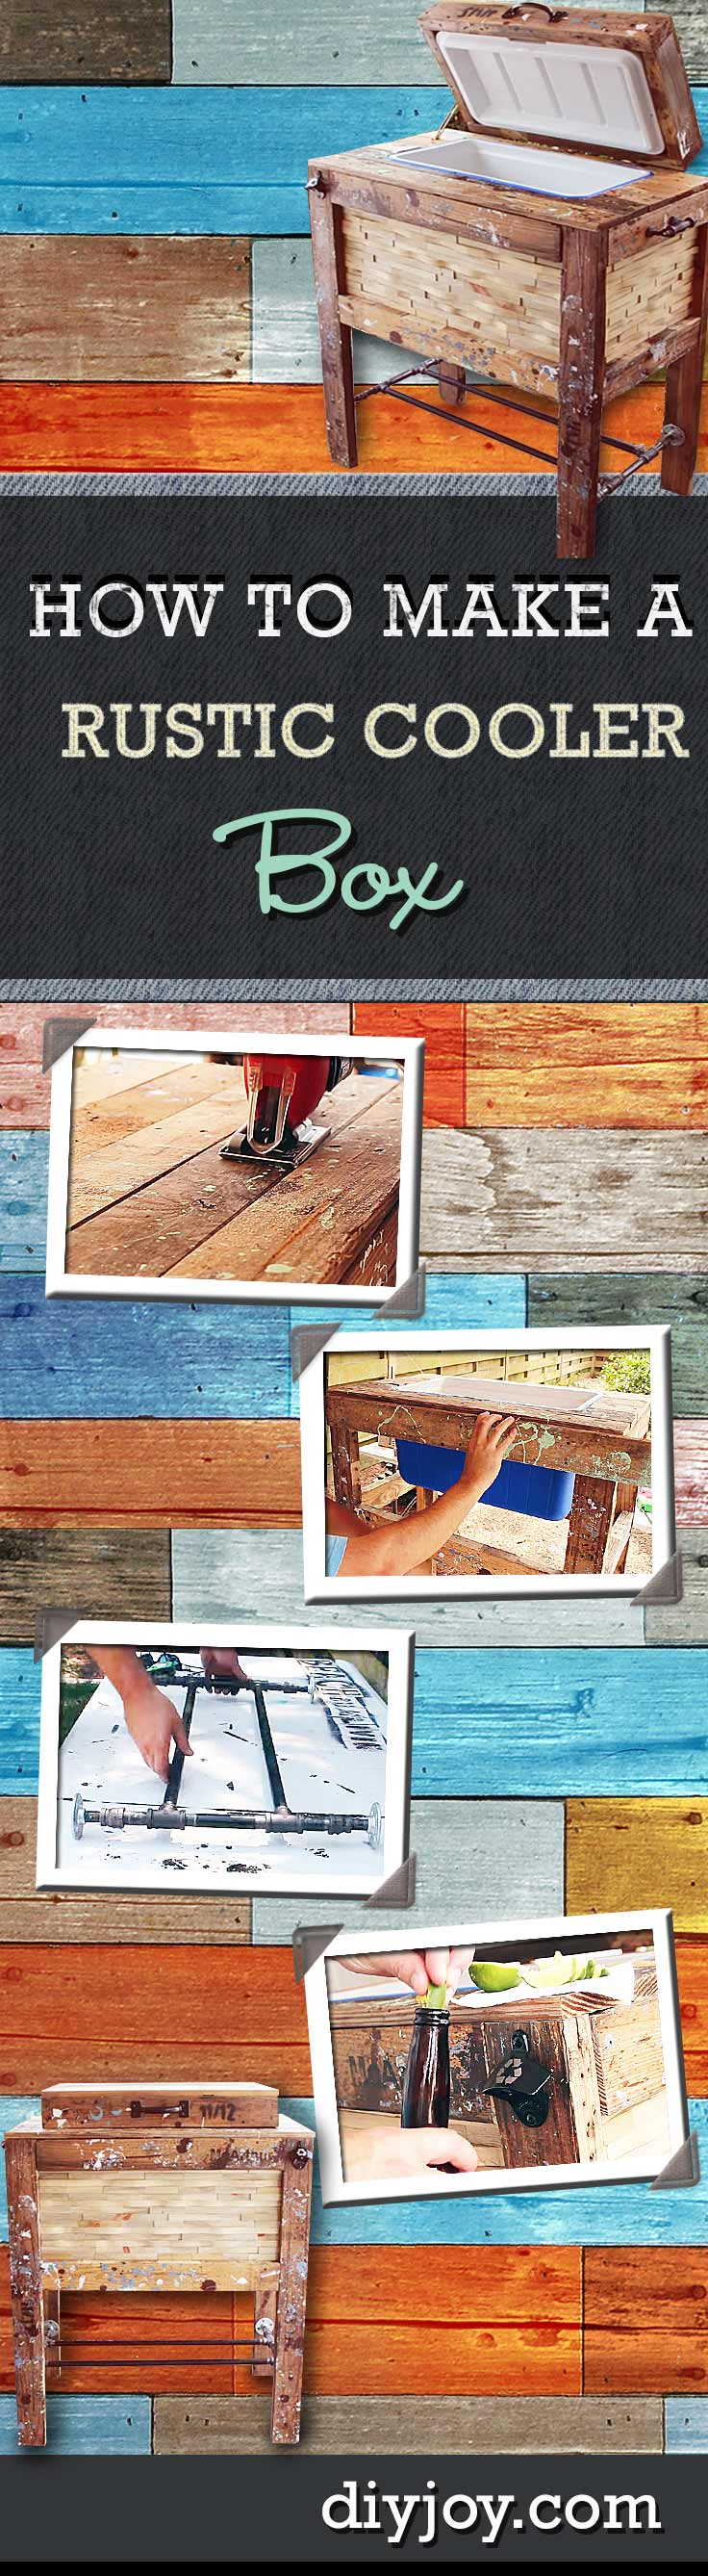 50 diy pallet furniture ideas diy pallet furniture ideas rustic cooler box best do it yourself projects made with solutioingenieria Image collections